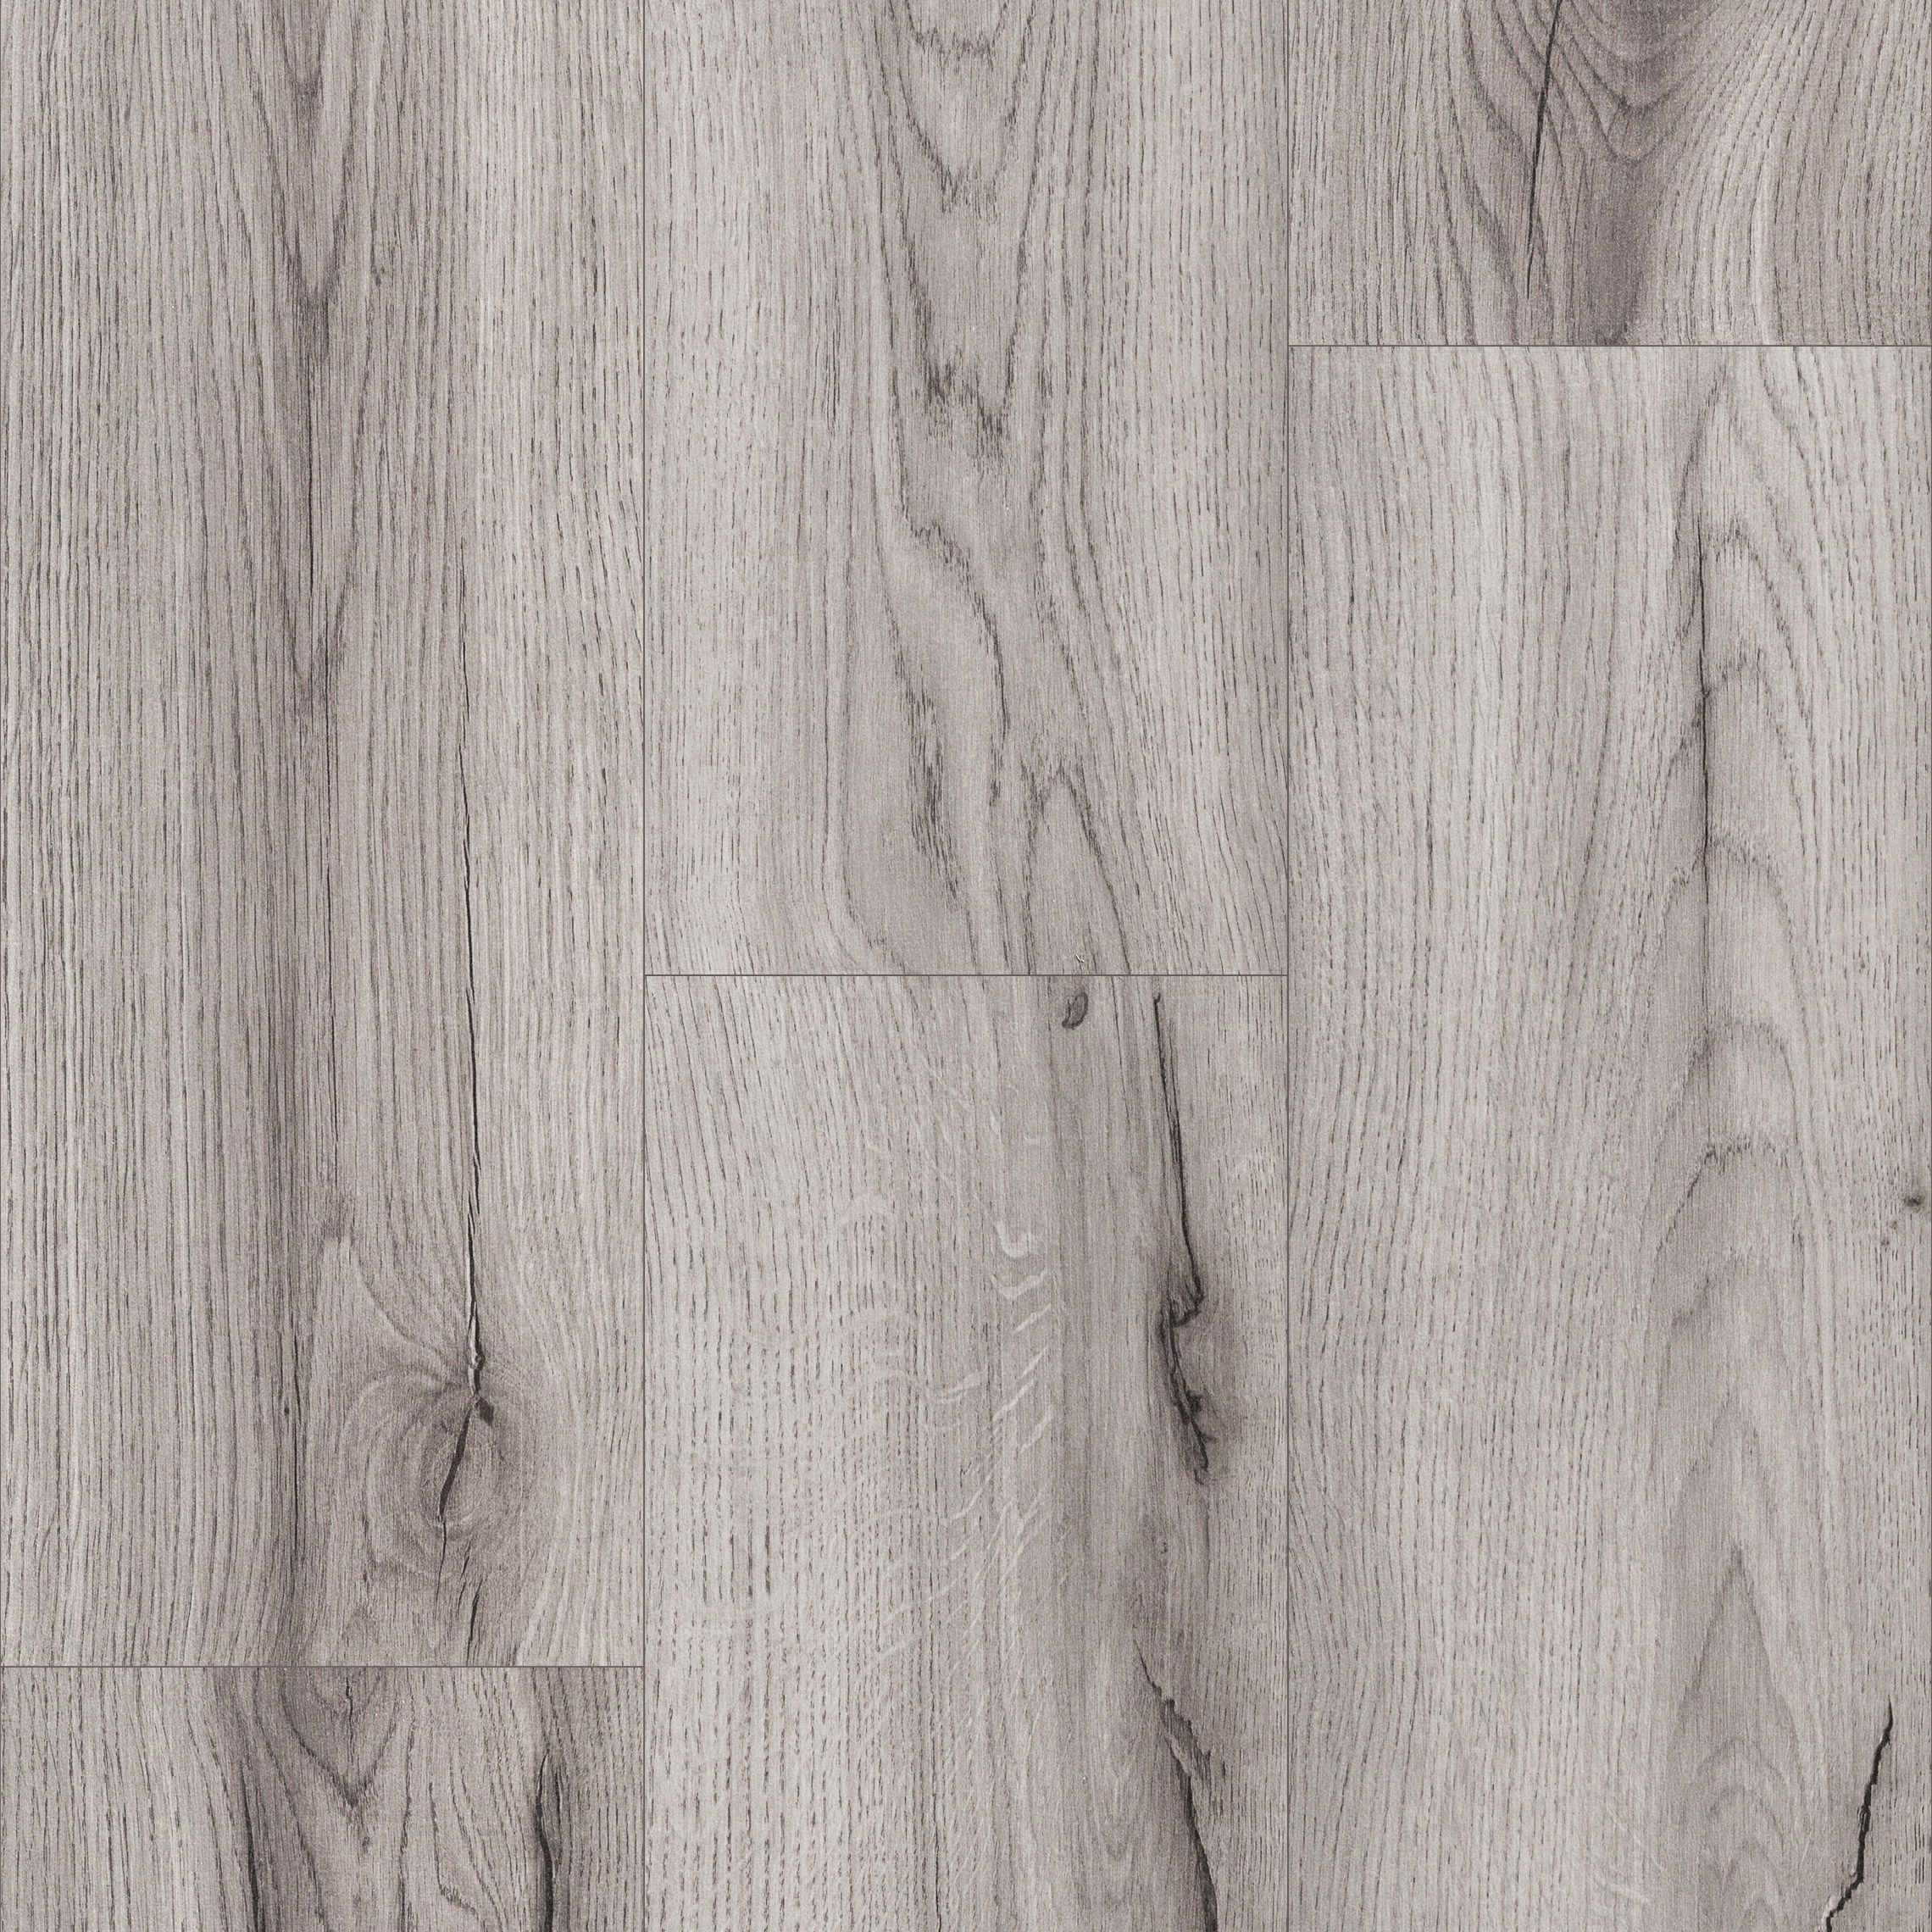 Kronotex Sound Plus Century Oak Grey Click Together 9mm Laminate Flooring With Attached Pad